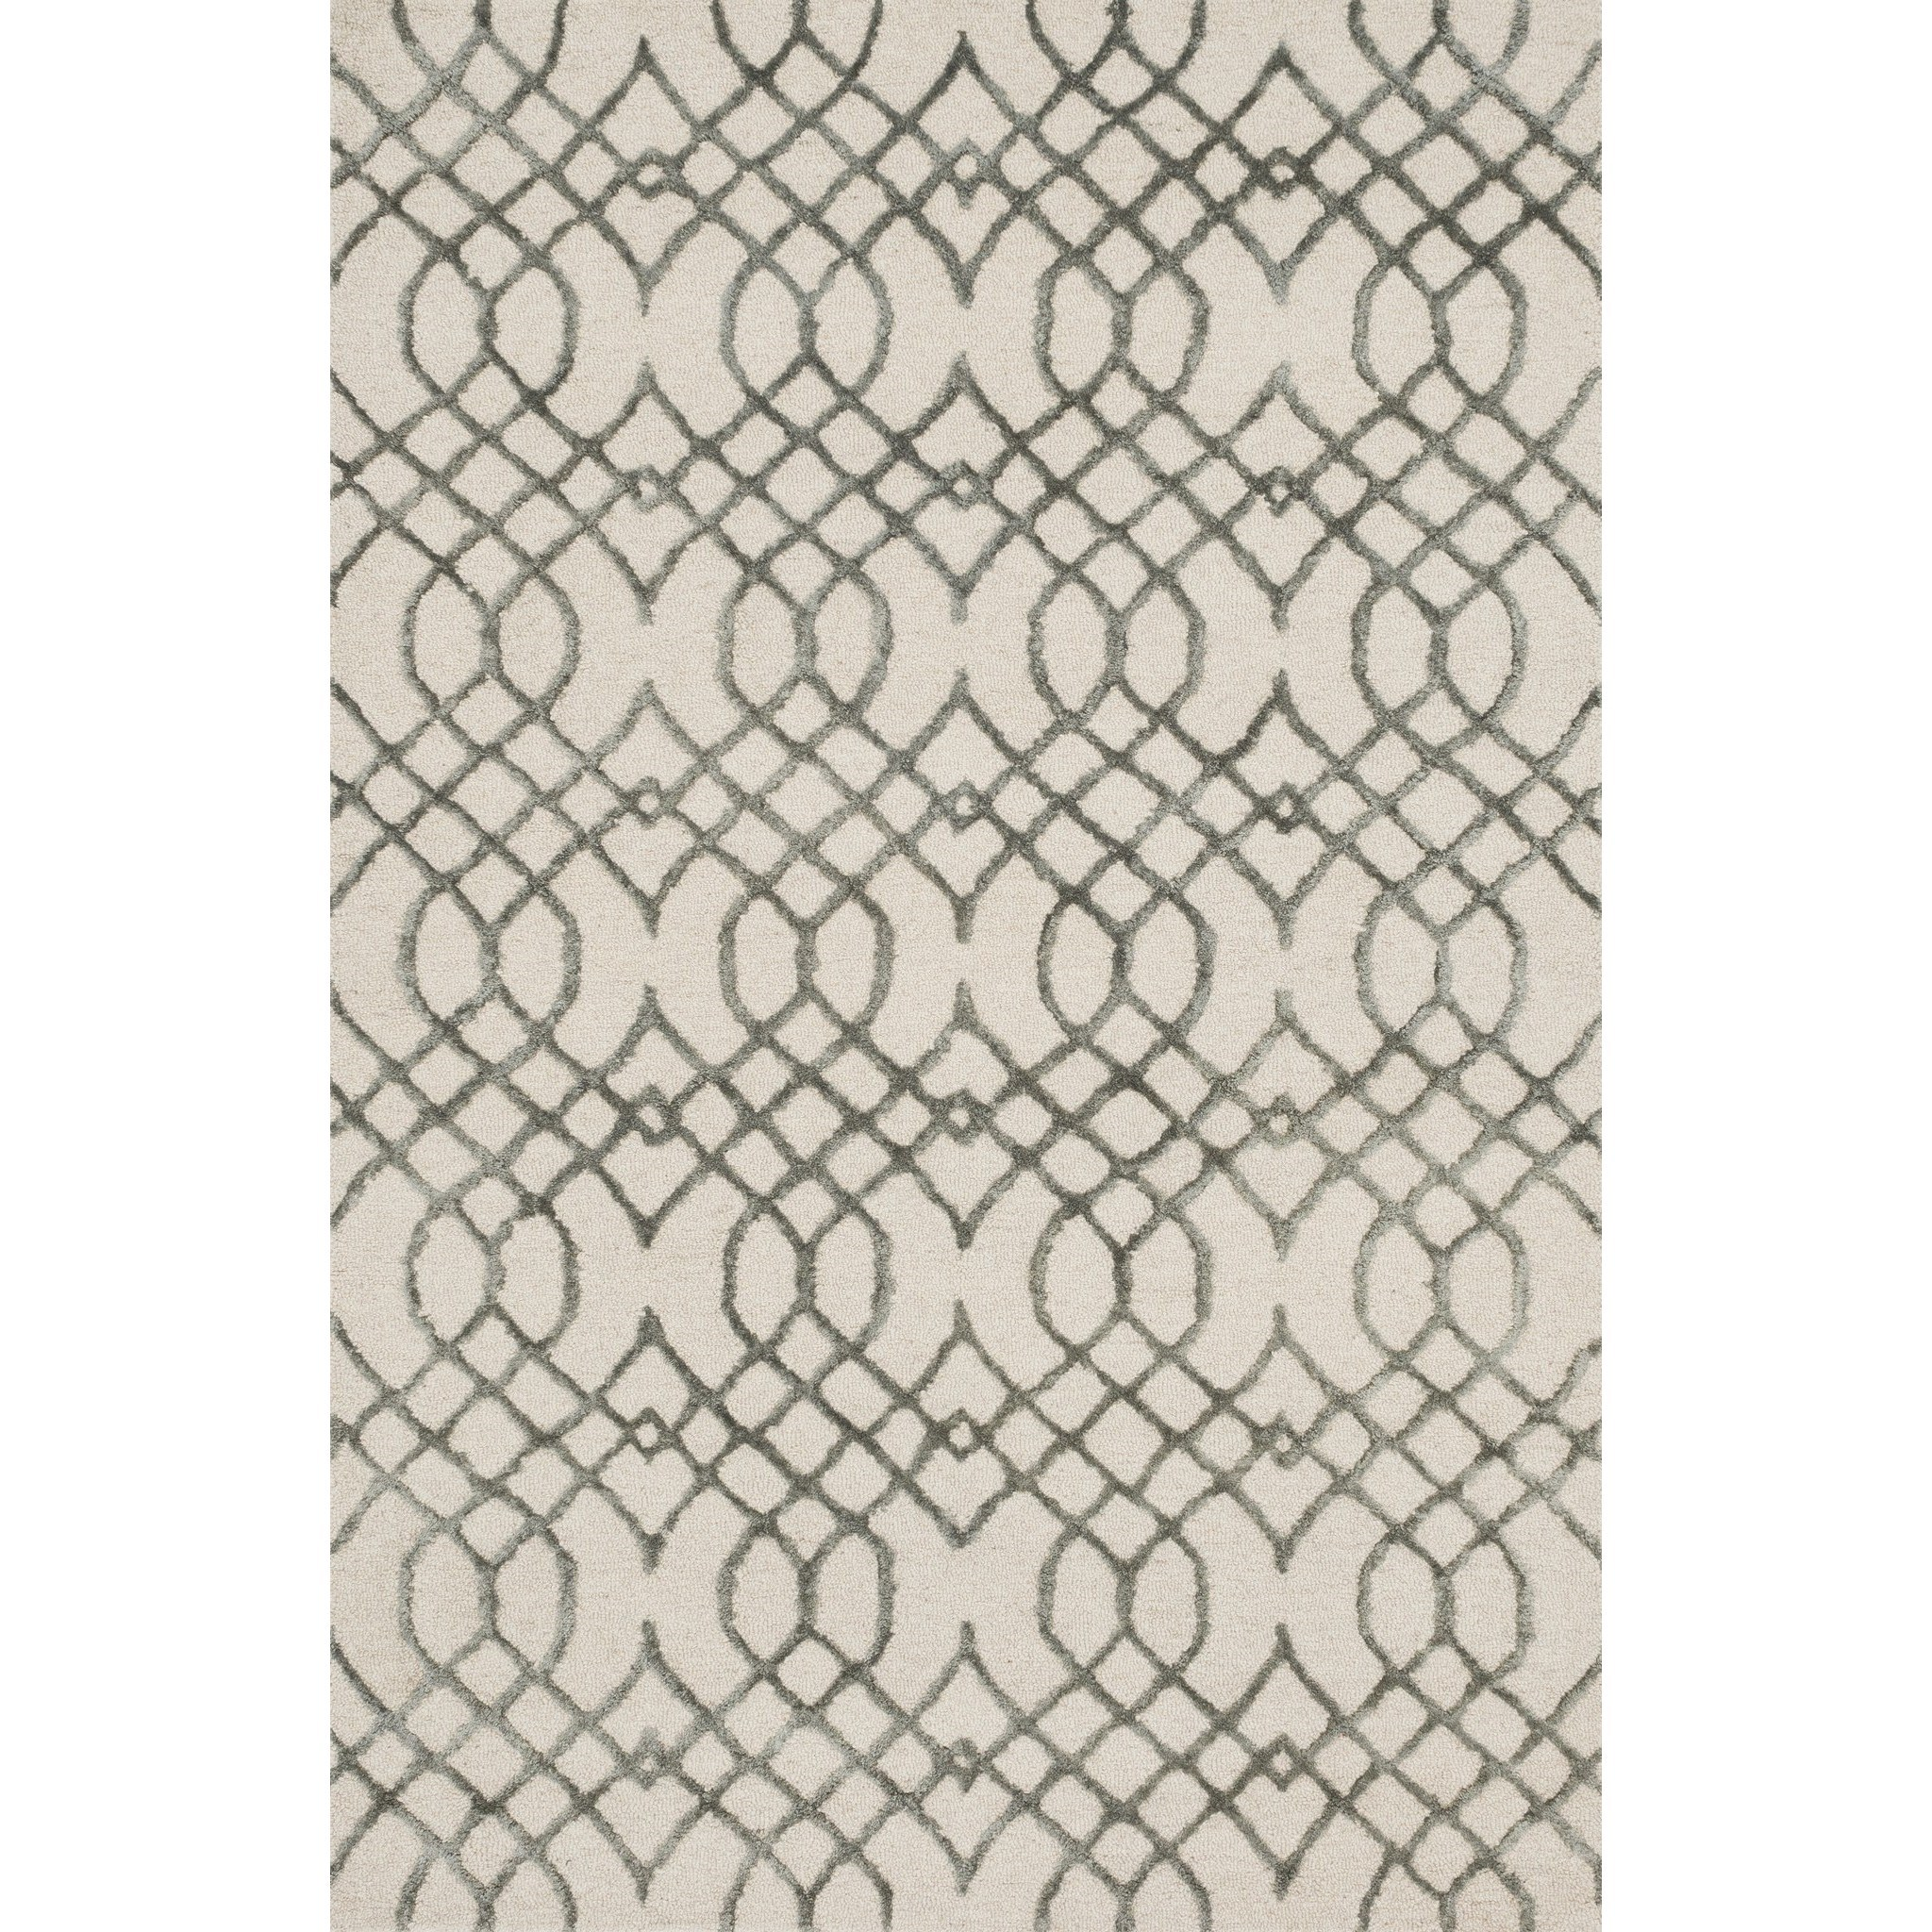 """Panache 3'-6"""" x 5'-6"""" Area Rug by Loloi Rugs at Sprintz Furniture"""